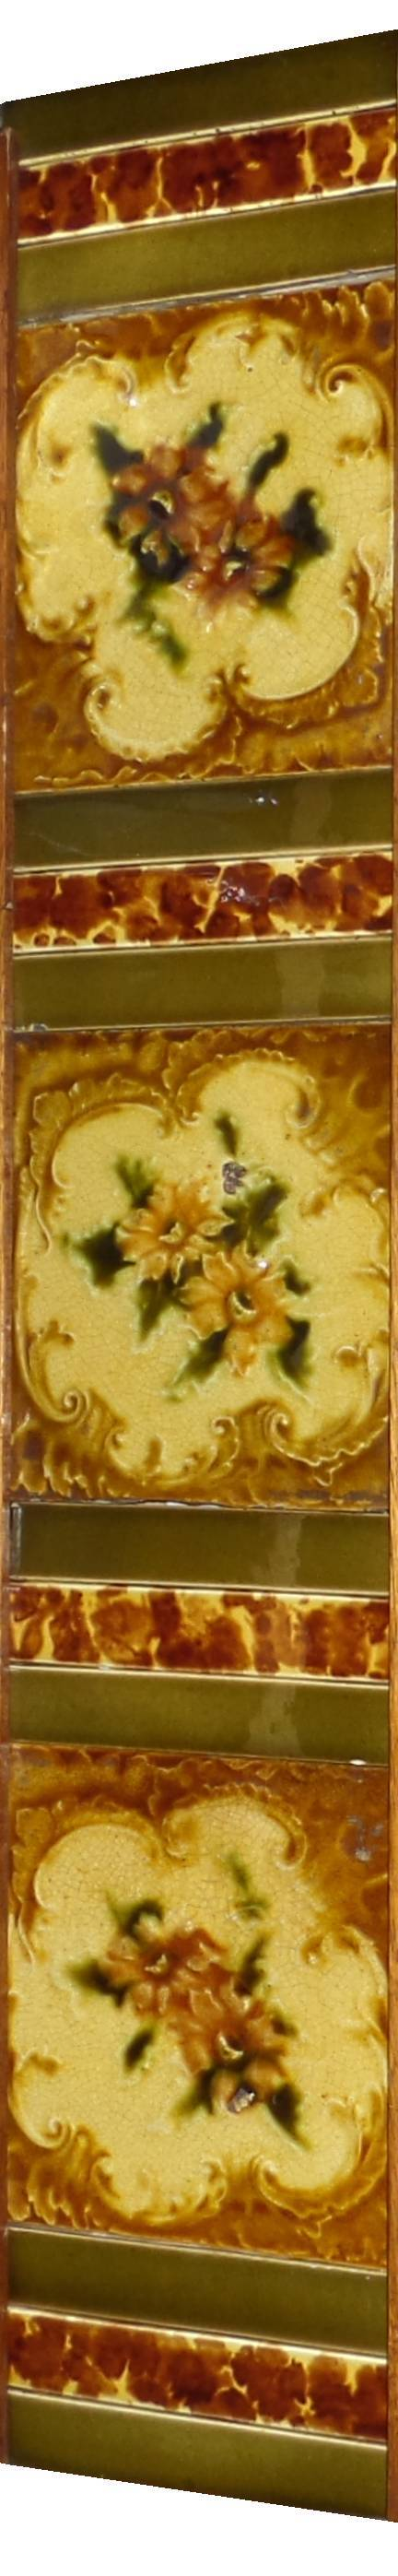 antique fireplace tile set